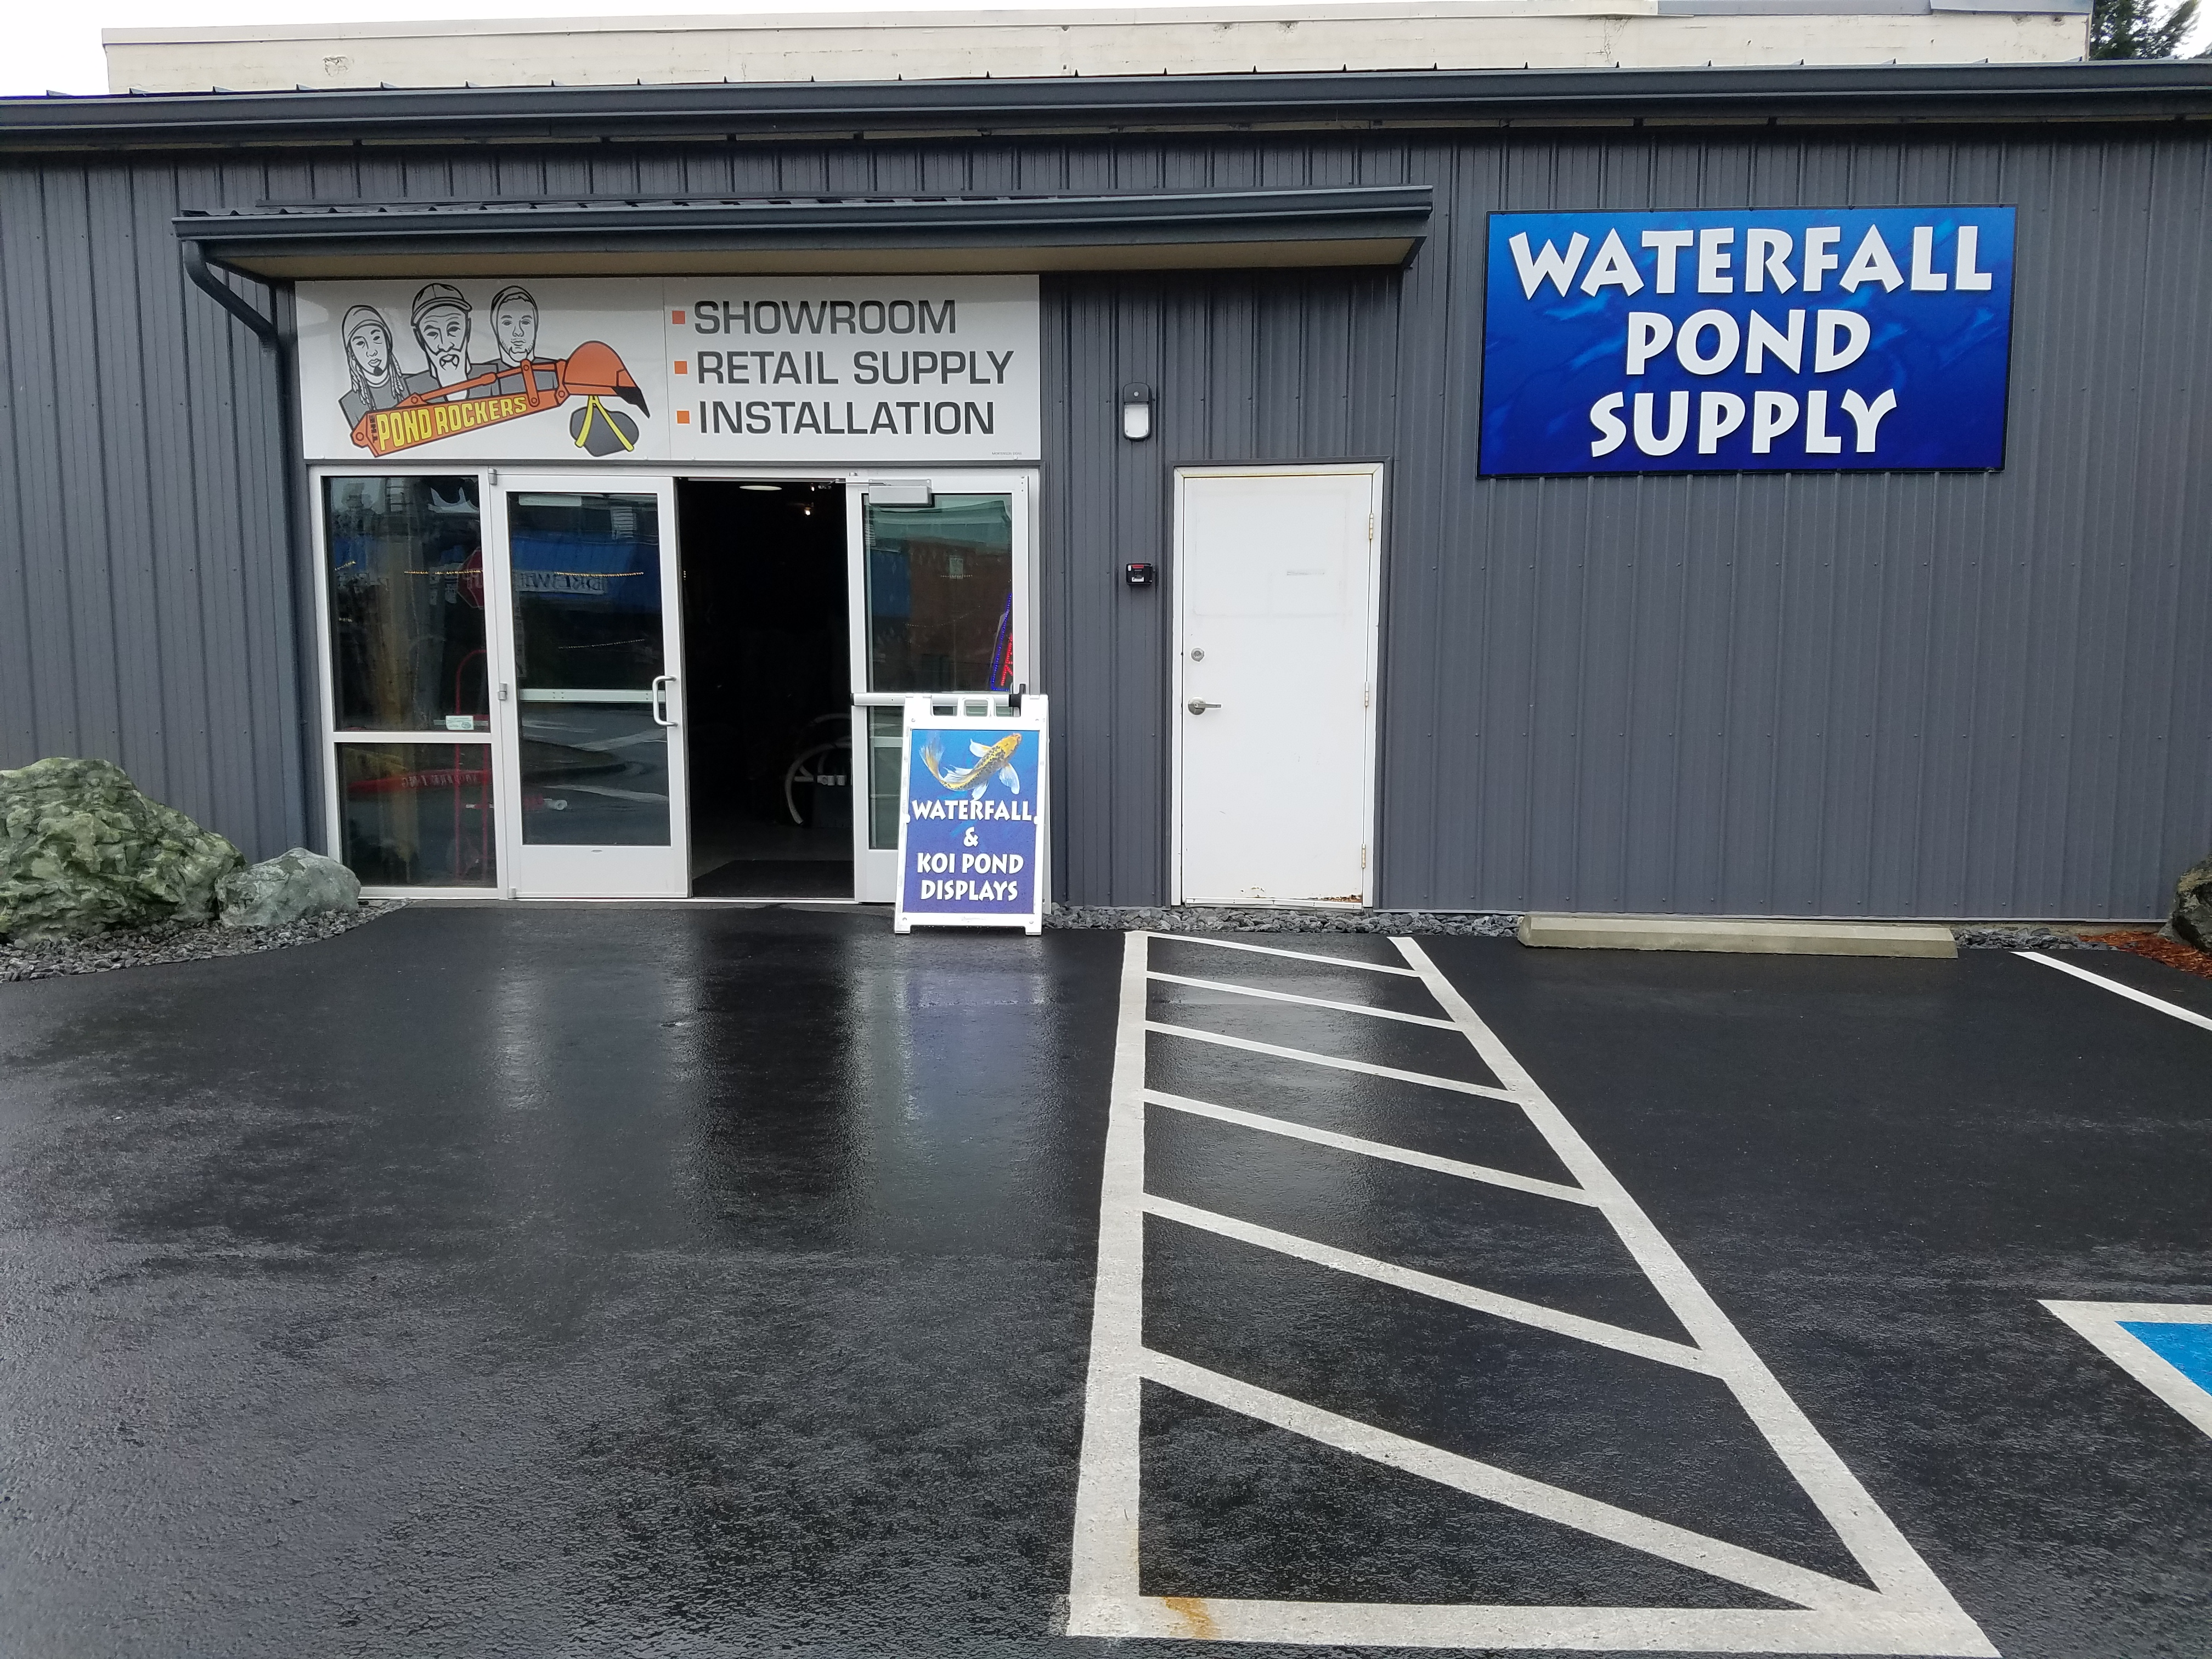 Waterfall pond supply of wa in mount vernon wa 360 for Local pond supplies